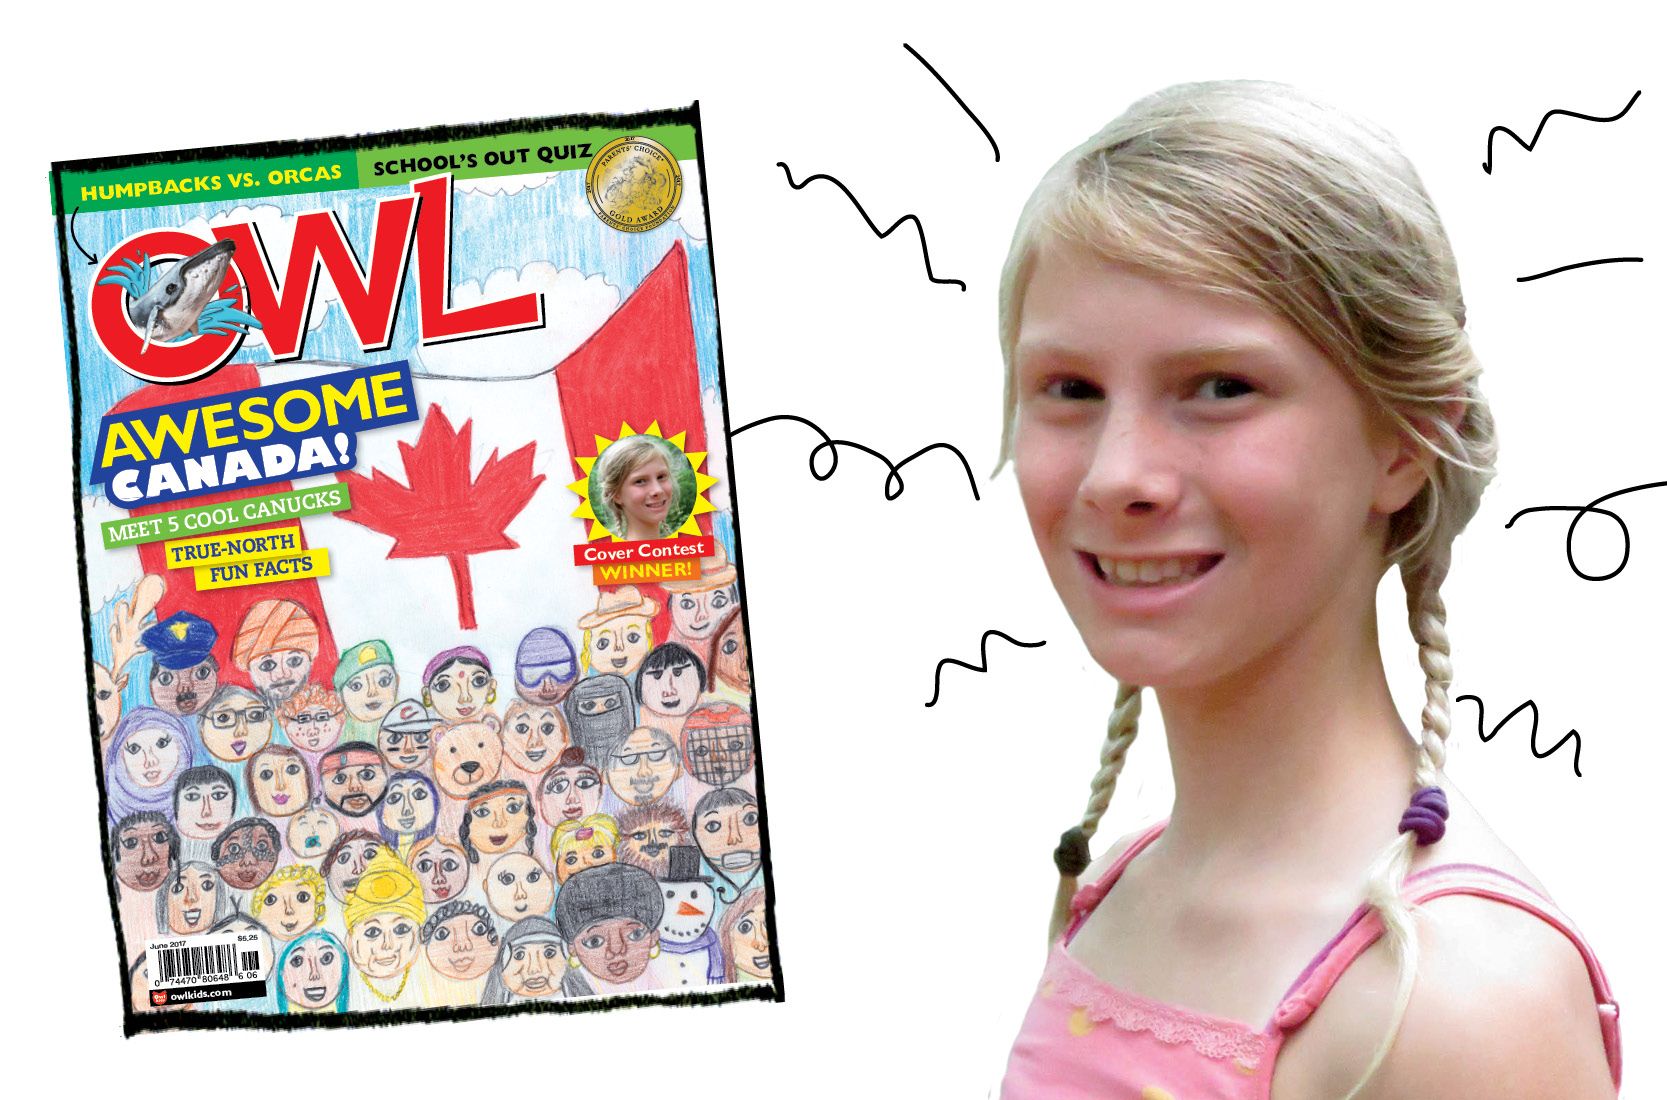 INTERVIEW: Meet OWL's Canada Cover Contest Winner